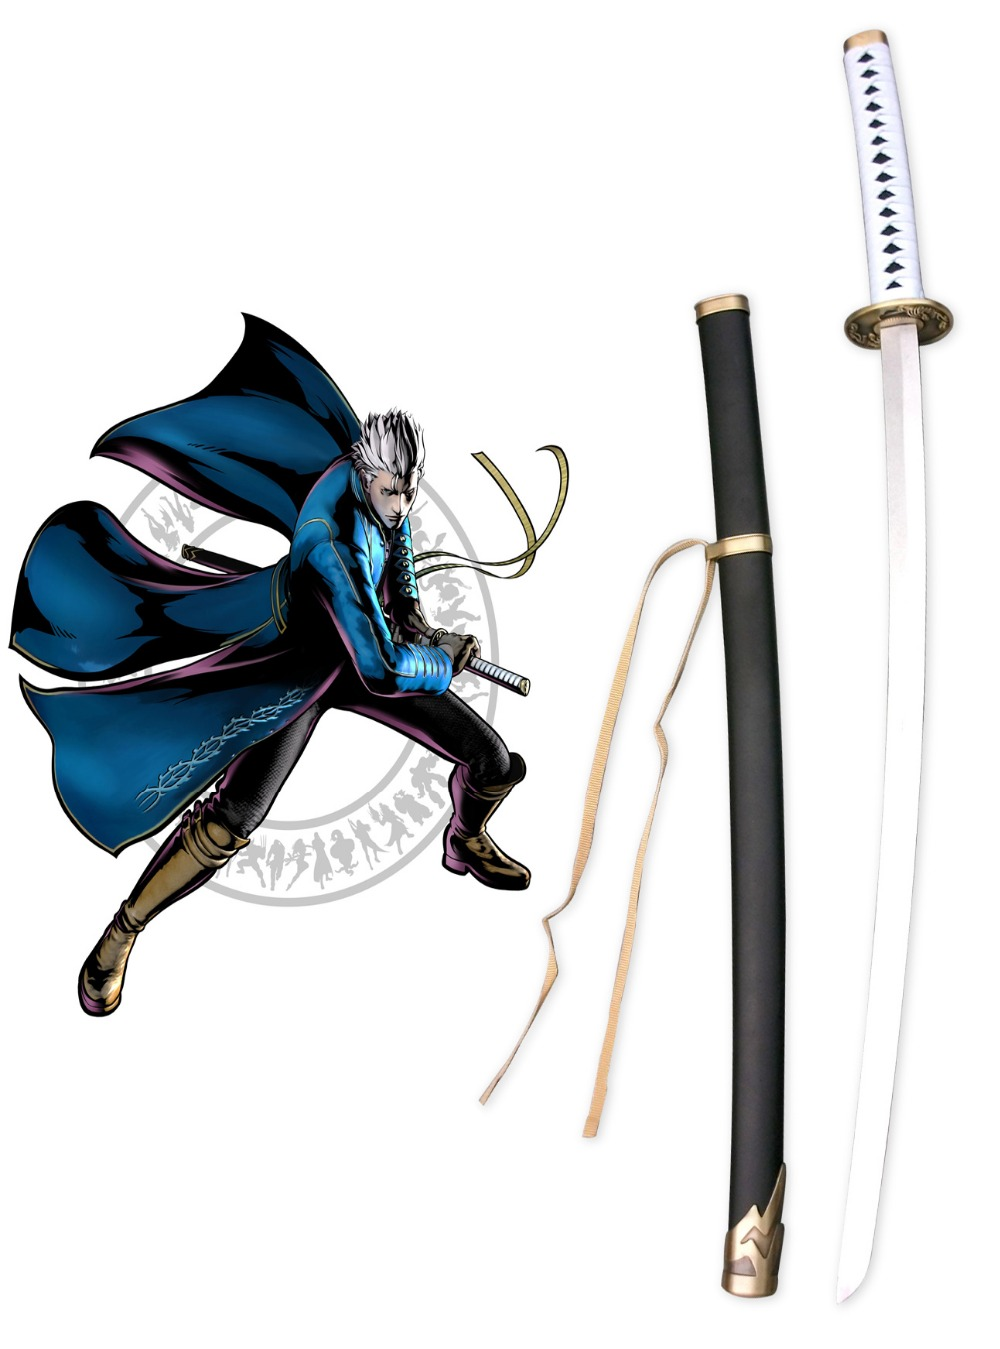 Free Shipping Devil May Cry 3: Dante's Awakening Vergil Yamato Cosplay Weapons халаты банные sis халат банный